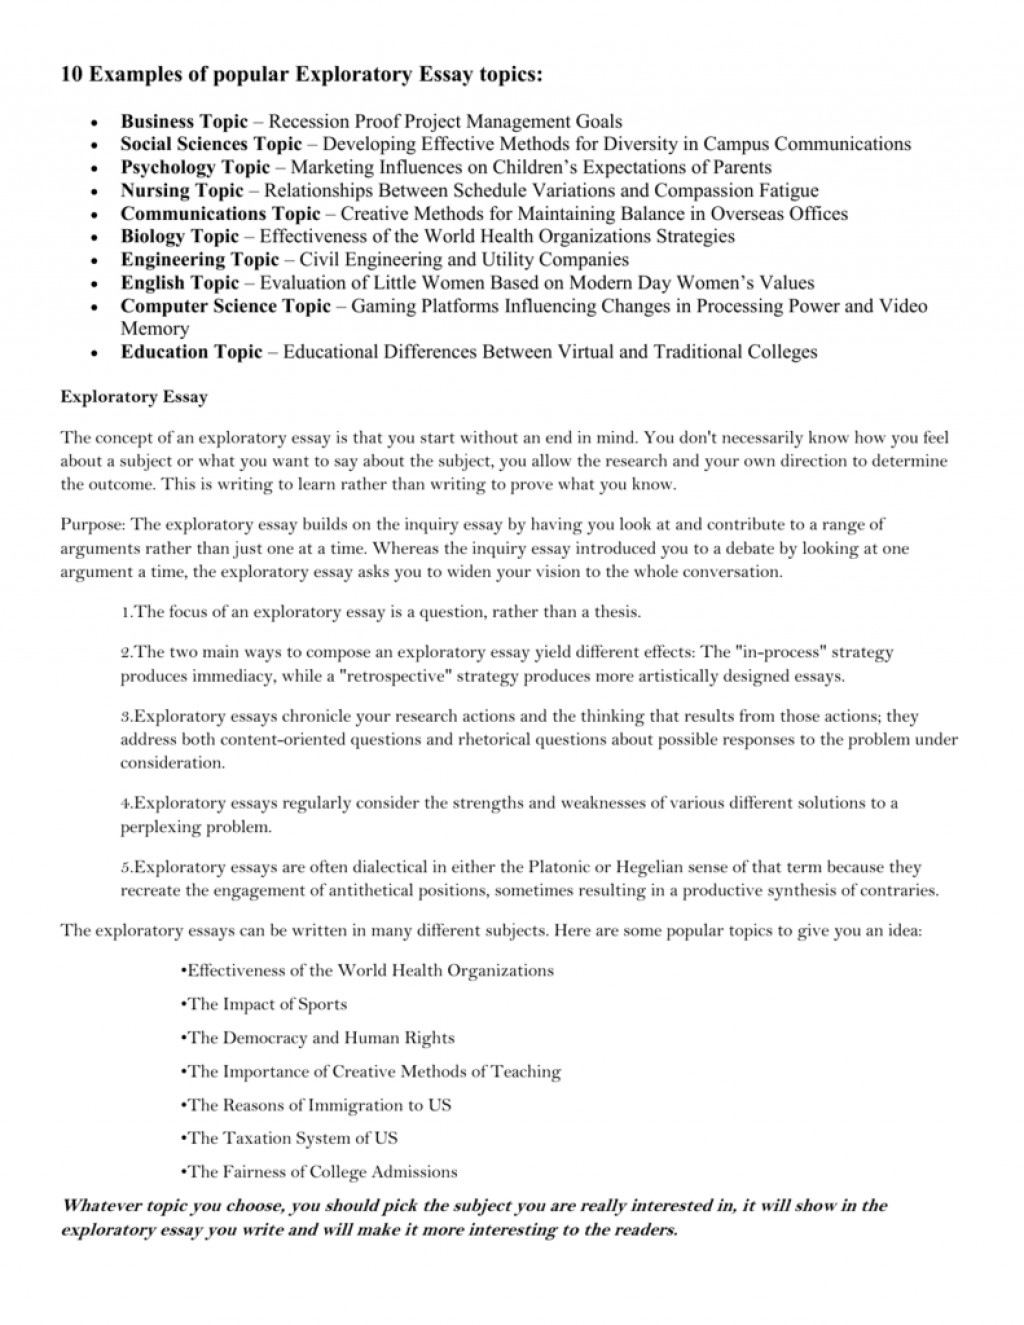 004 006903021 1 Essay Example Stunning Exploratory Thesis Fun Topics Sample Pdf Large